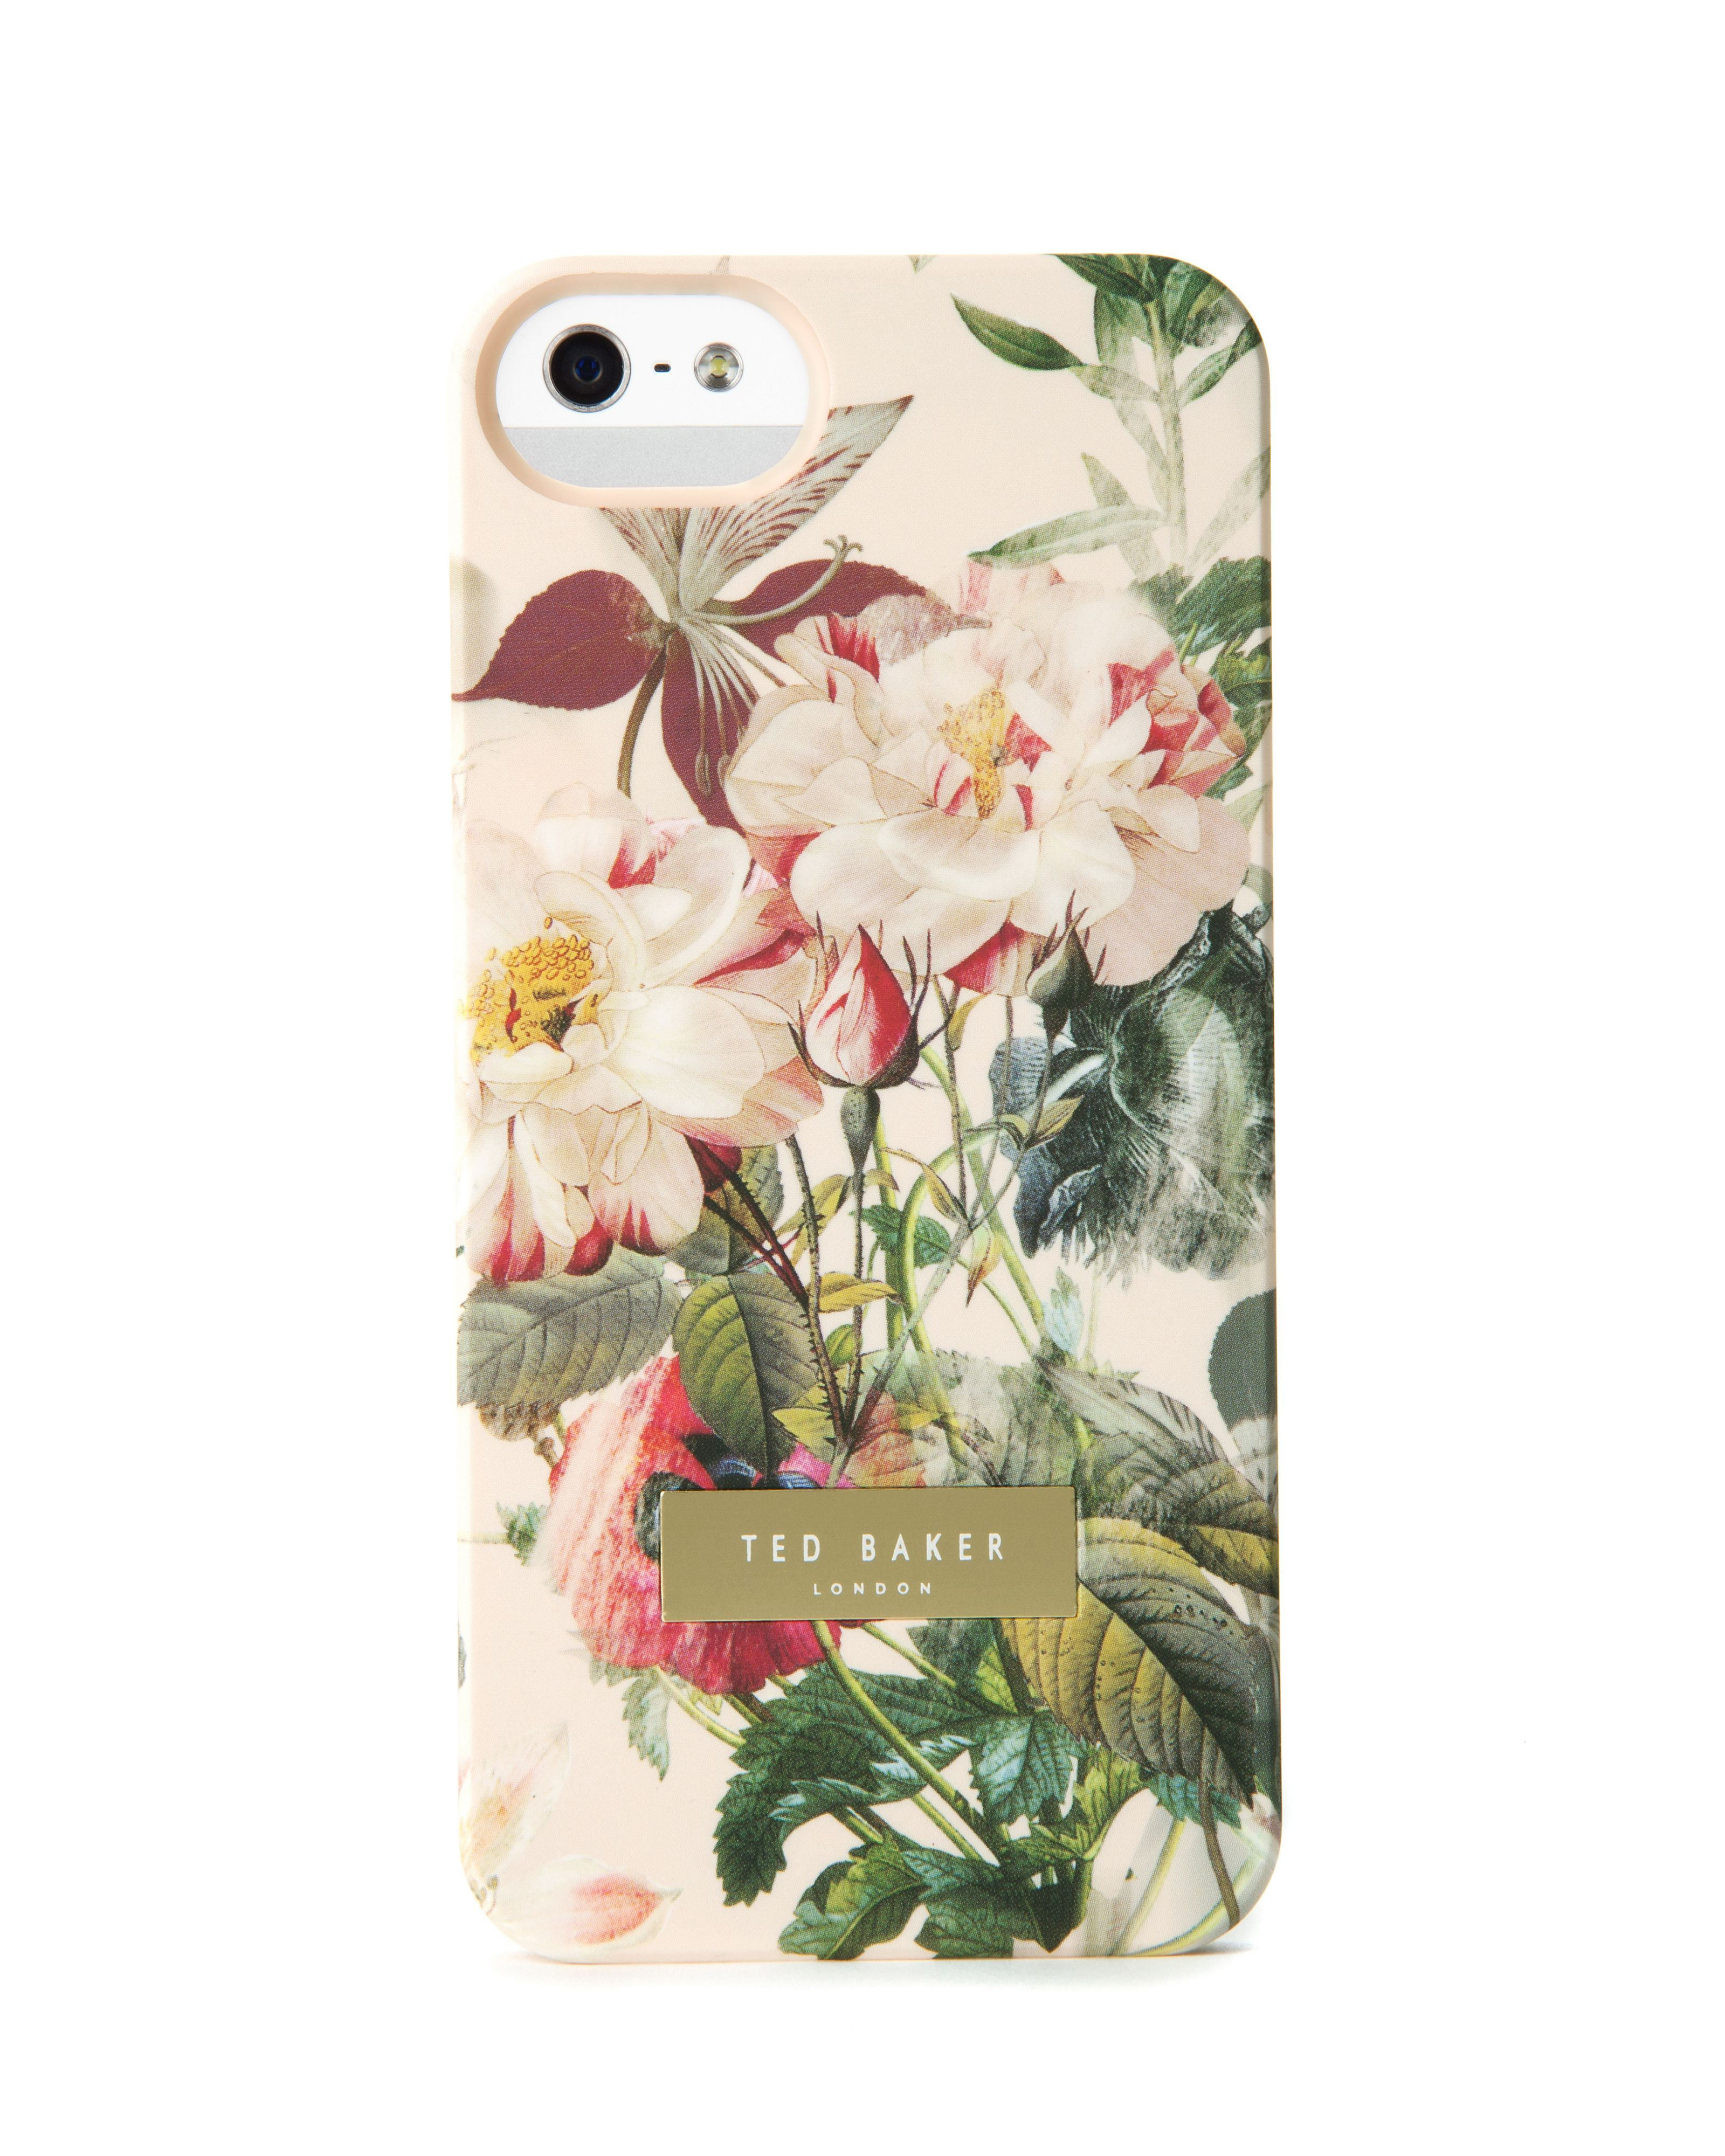 Susu opulent bloom iphone case